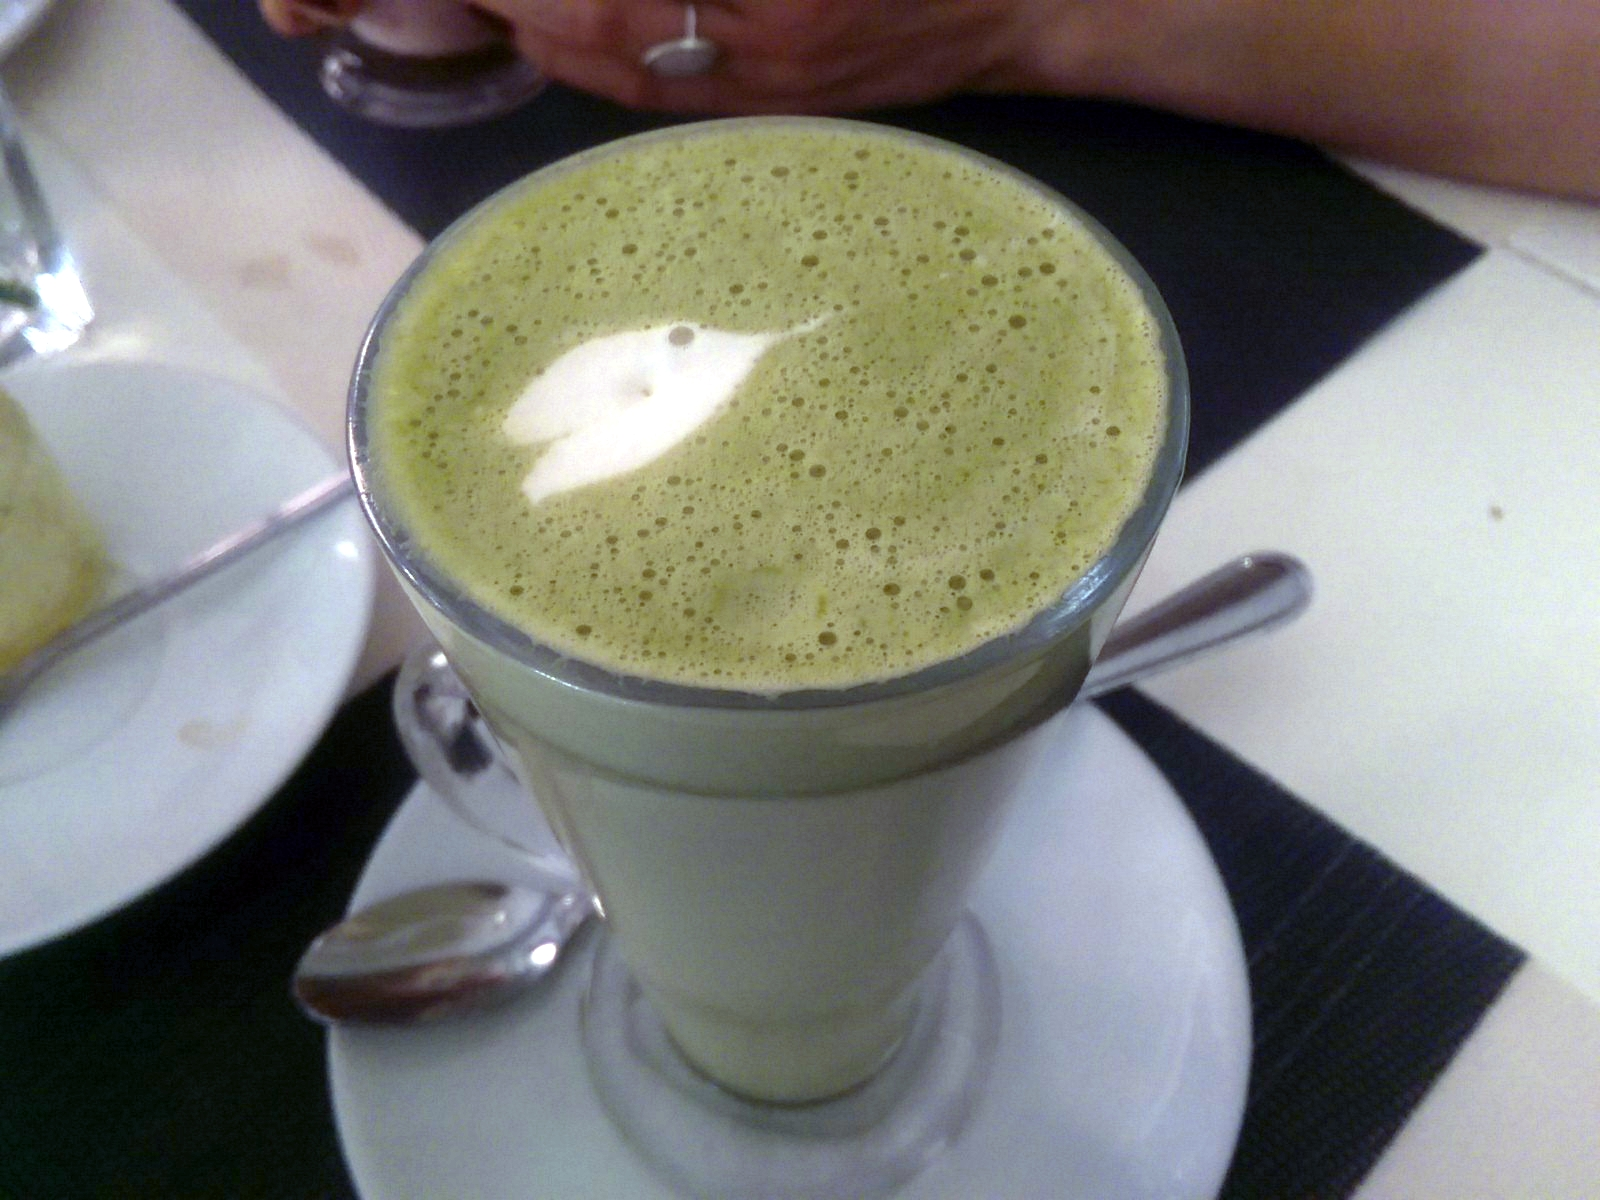 A tall glass with green foamy drink